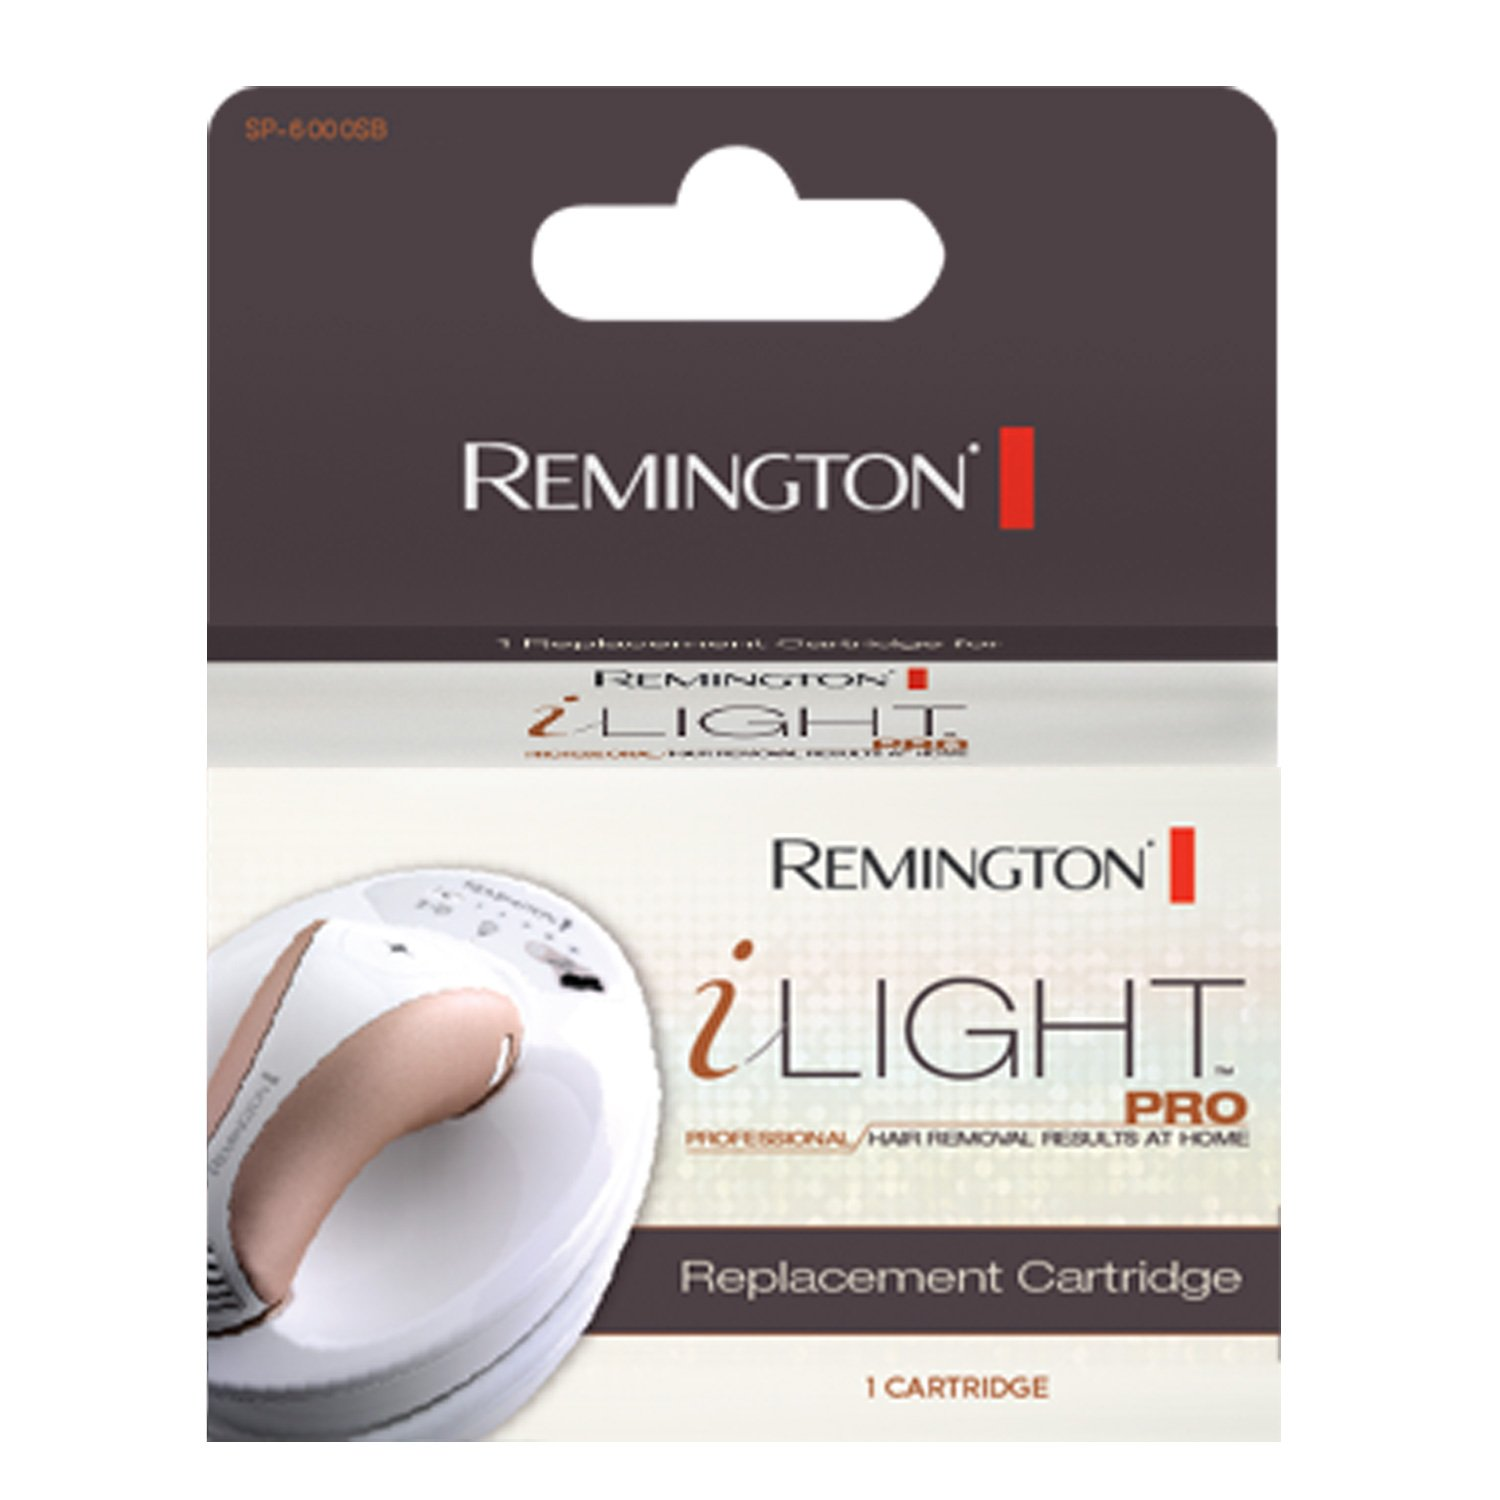 Remington SP6000SB I-Light Pro, Professional IPL Hair Removal System, Replacement Cartridge